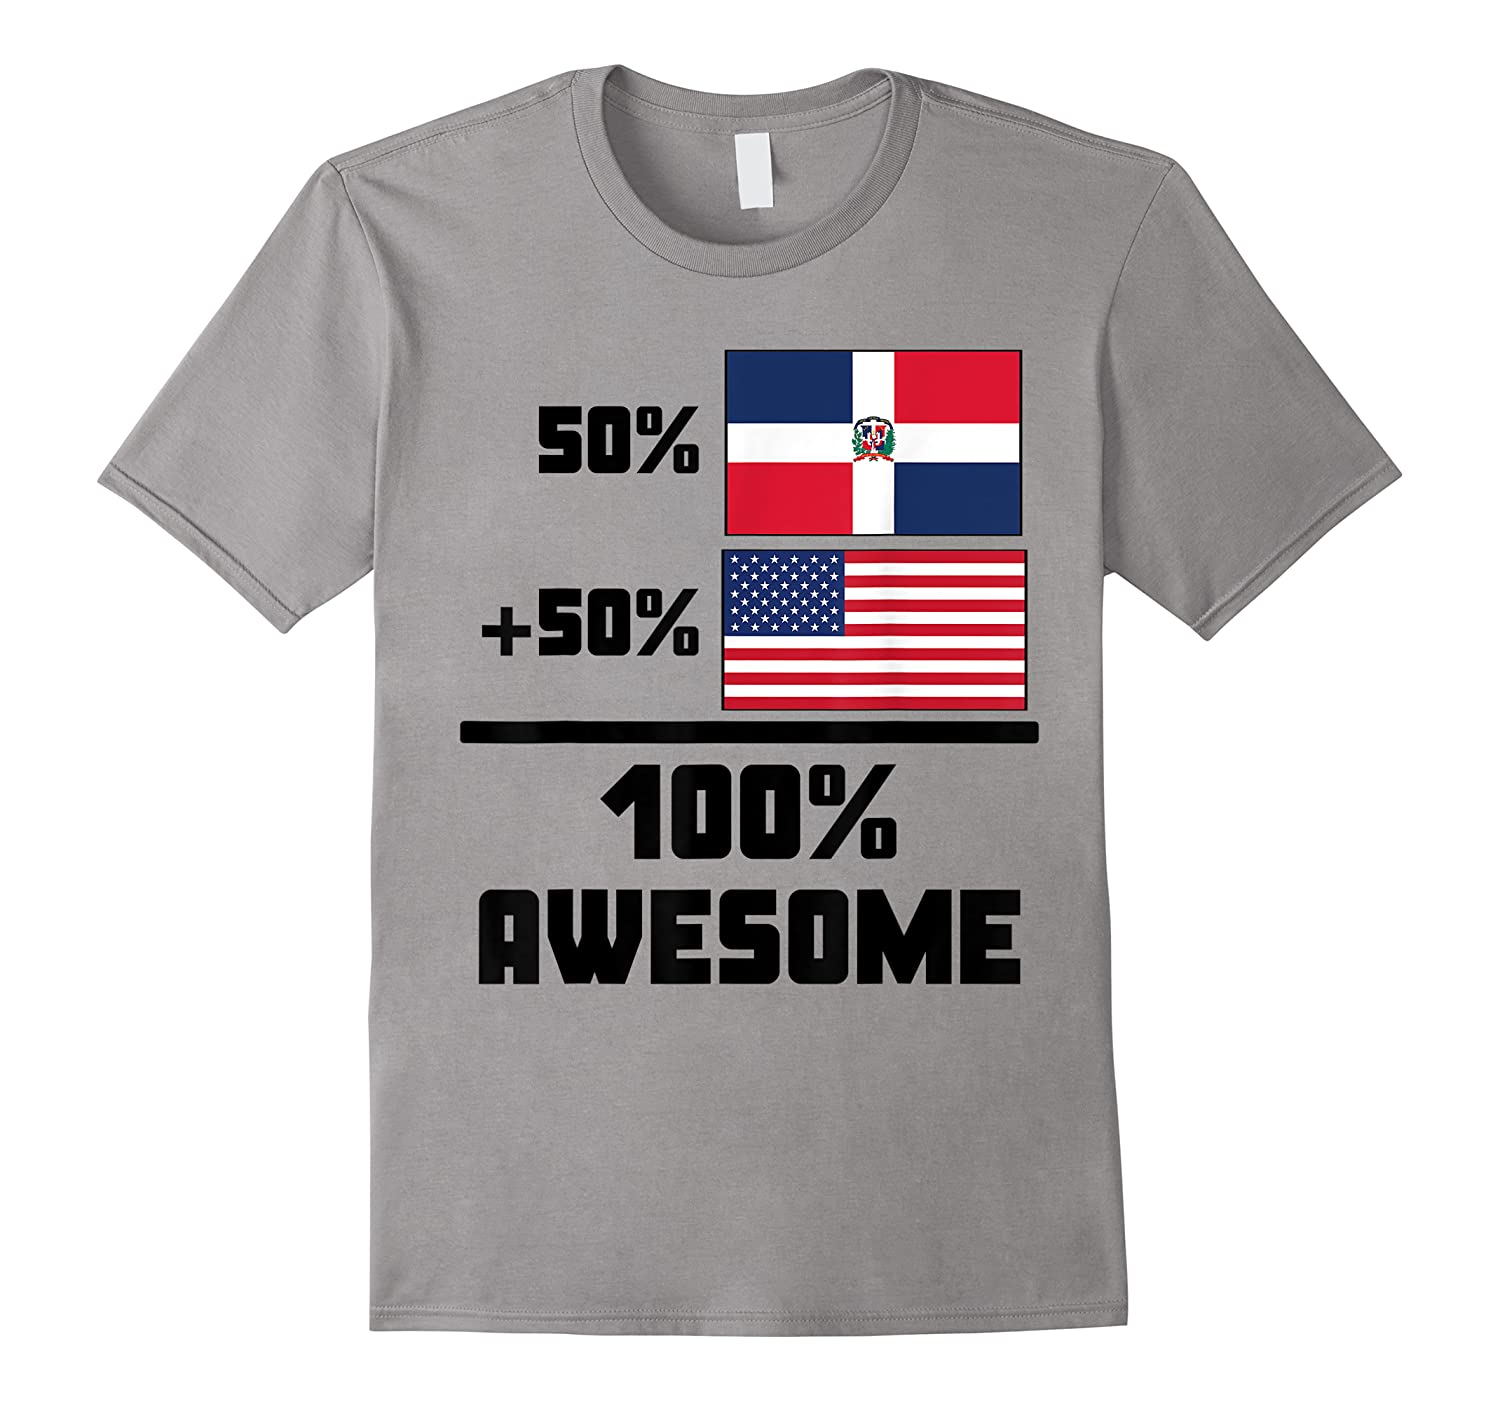 50 Dominican Republic 50 American 100 Awesome Funny Flag Shirts